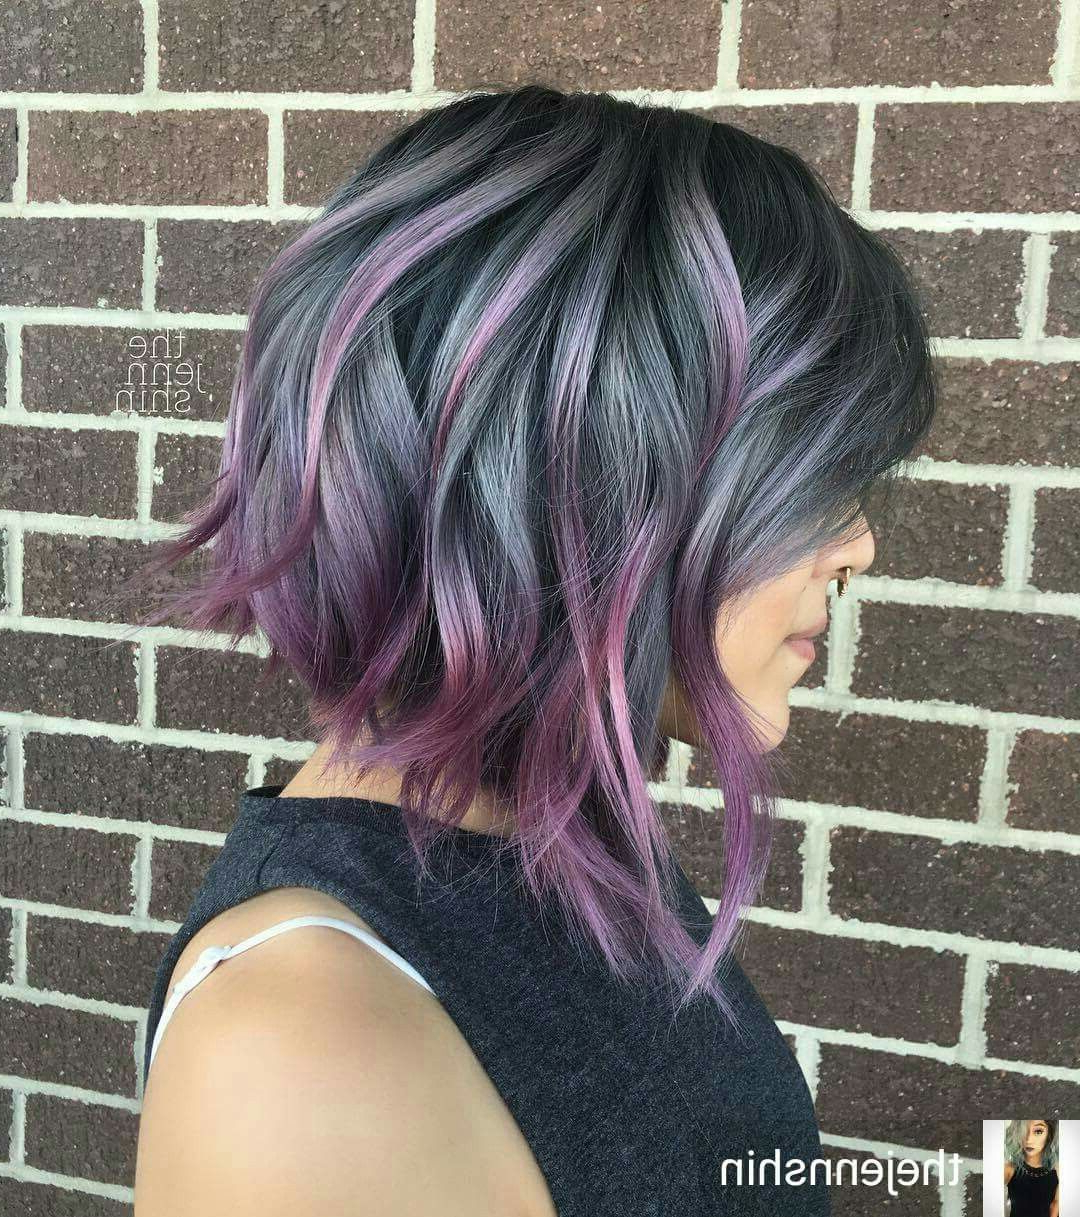 16+ Enthralling Ladies Hairstyles For Over 50 Ideas | Hair Regarding Lavender Balayage For Short A Line Haircuts (View 4 of 20)